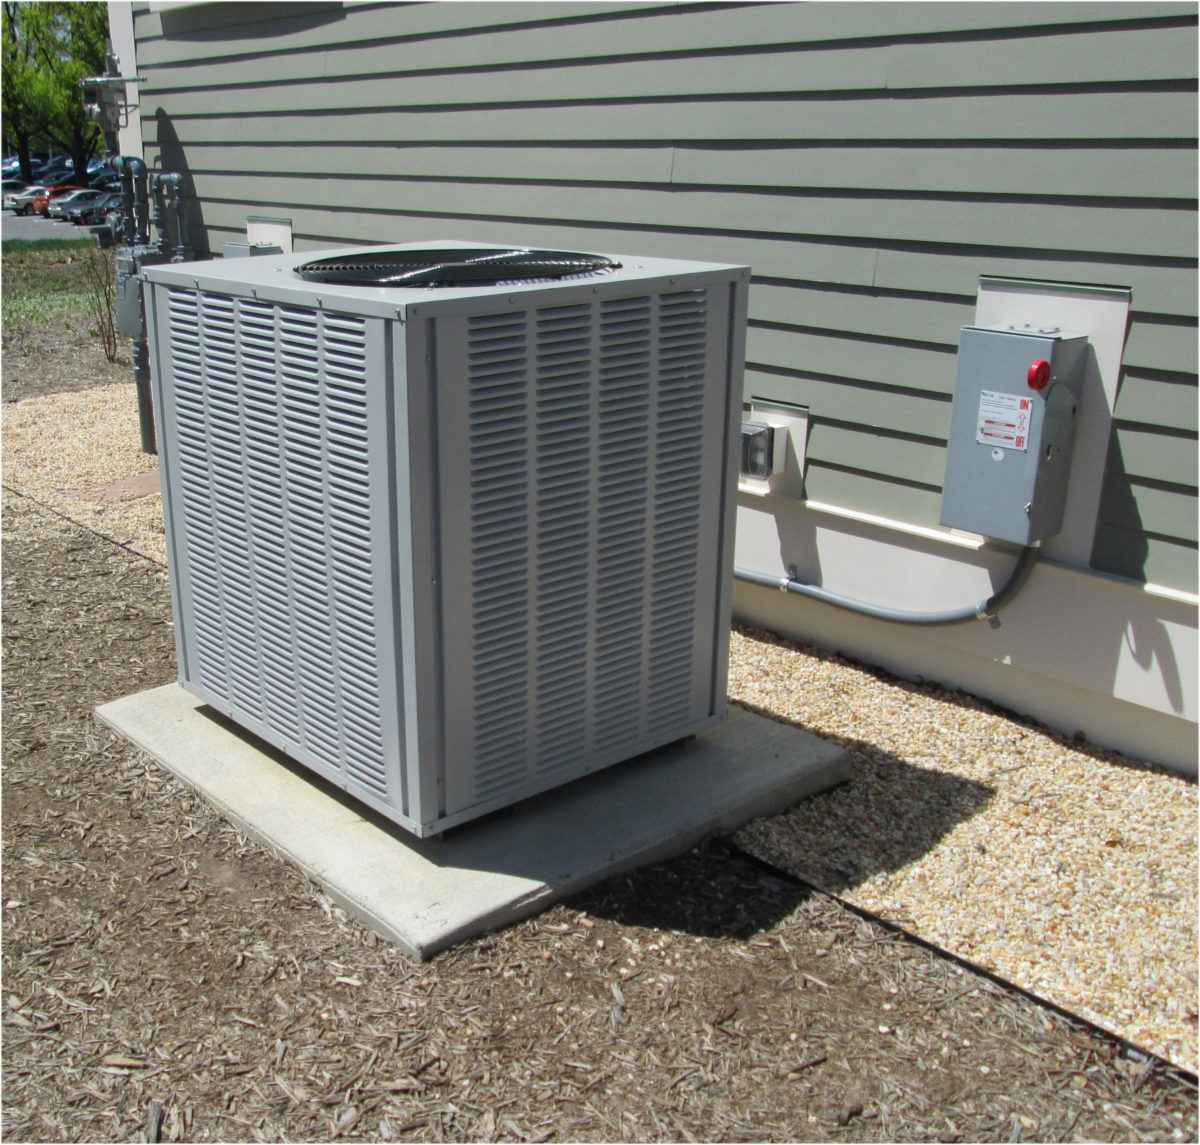 Property Management Tips – April Is A Great Time For HVAC Maintenance